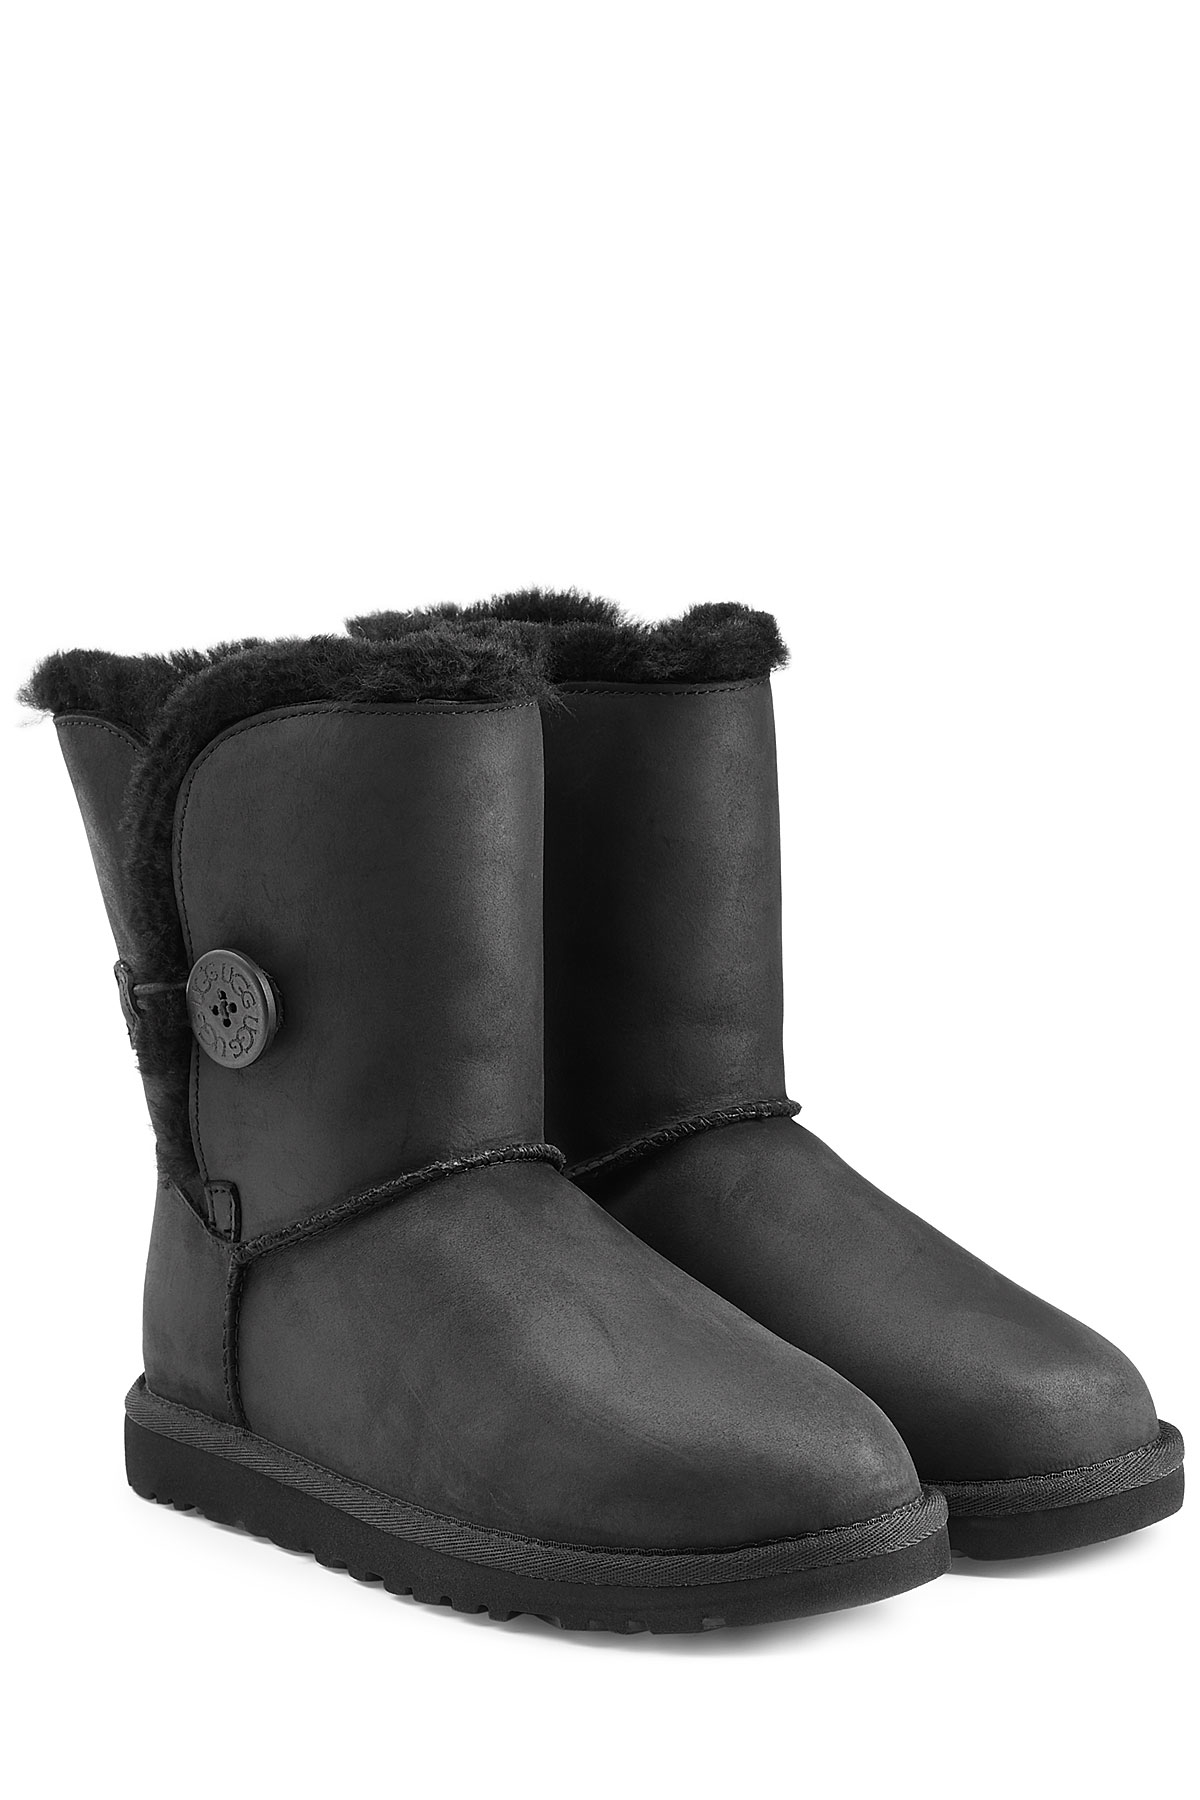 Lyst Ugg Bailey Button Leather Boots In Black